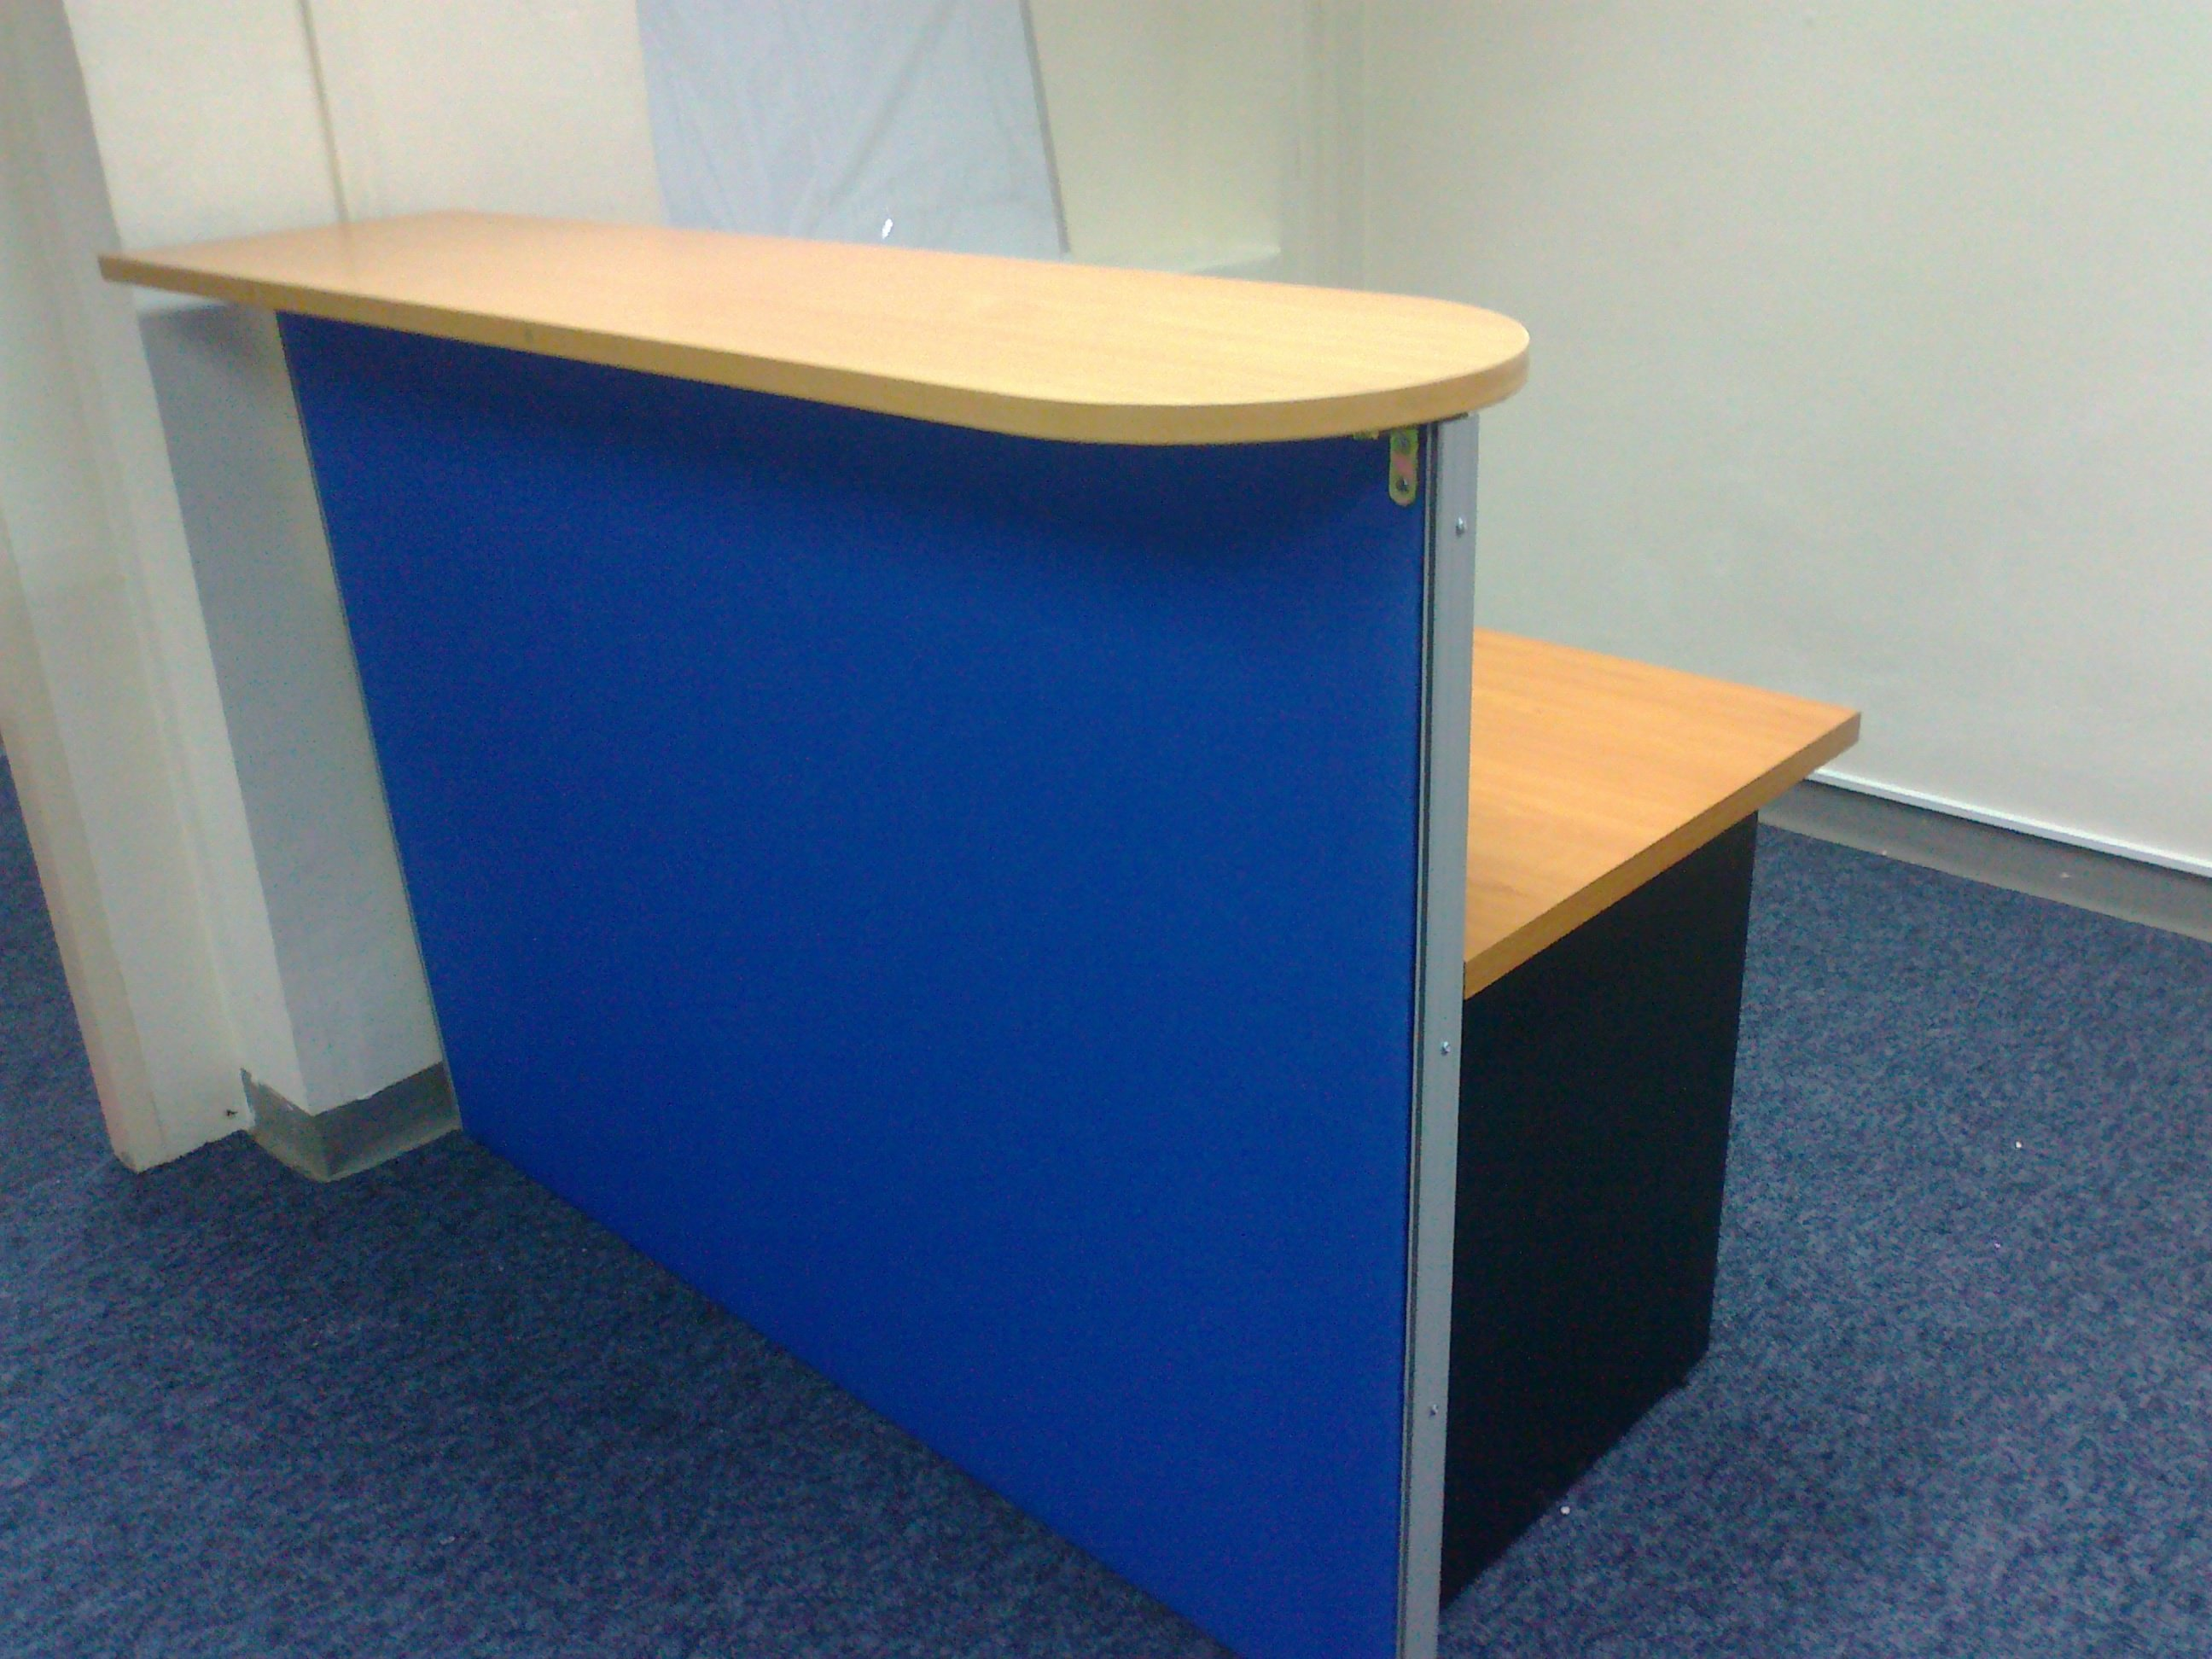 FOR SALE: New & Used Office Tables, Meeting Tables, Reception counter, Office chair